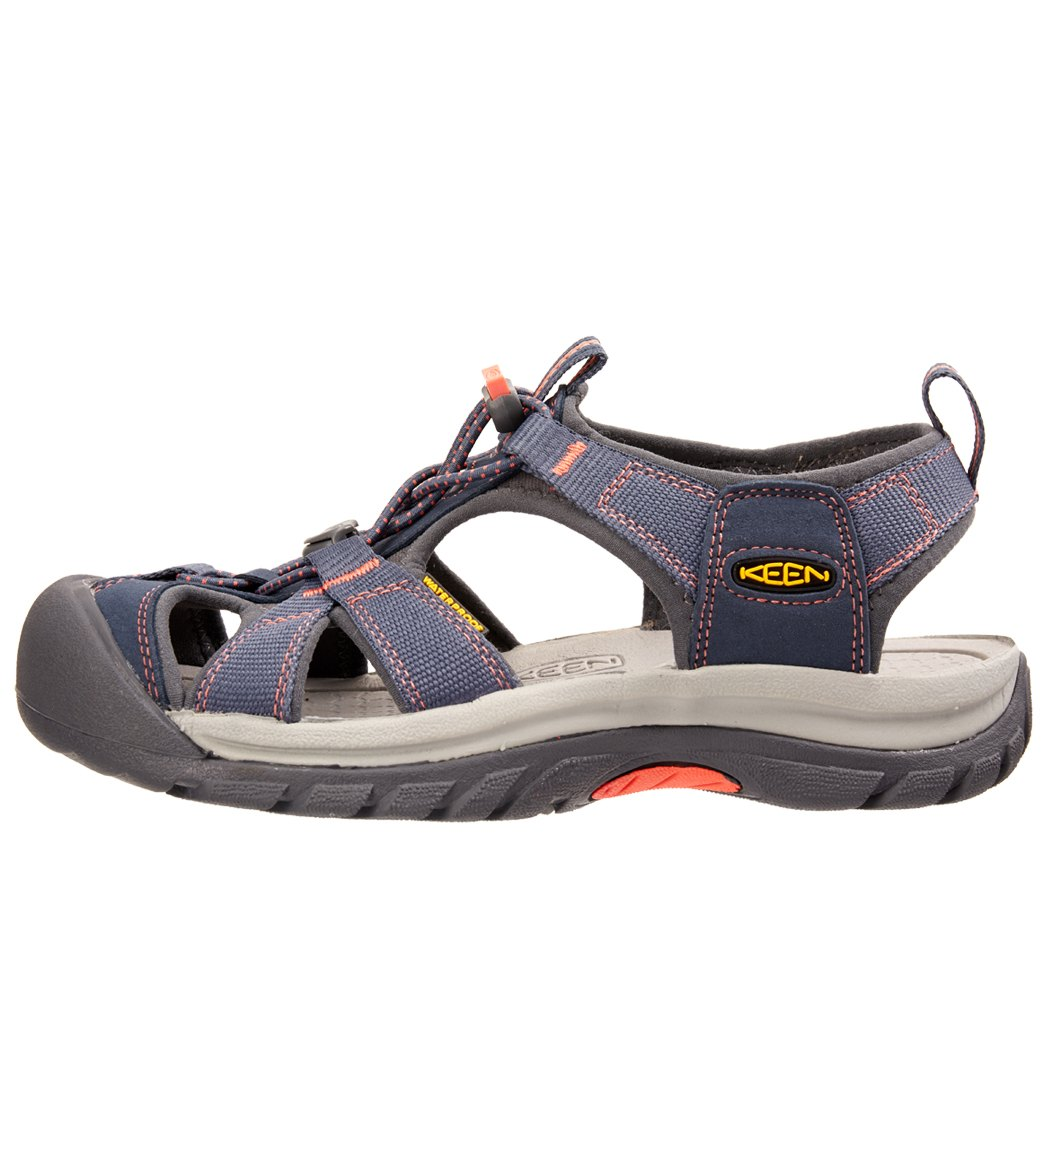 f4889623b2 Keen Women's Venice H2 Water Shoes at SwimOutlet.com - Free Shipping